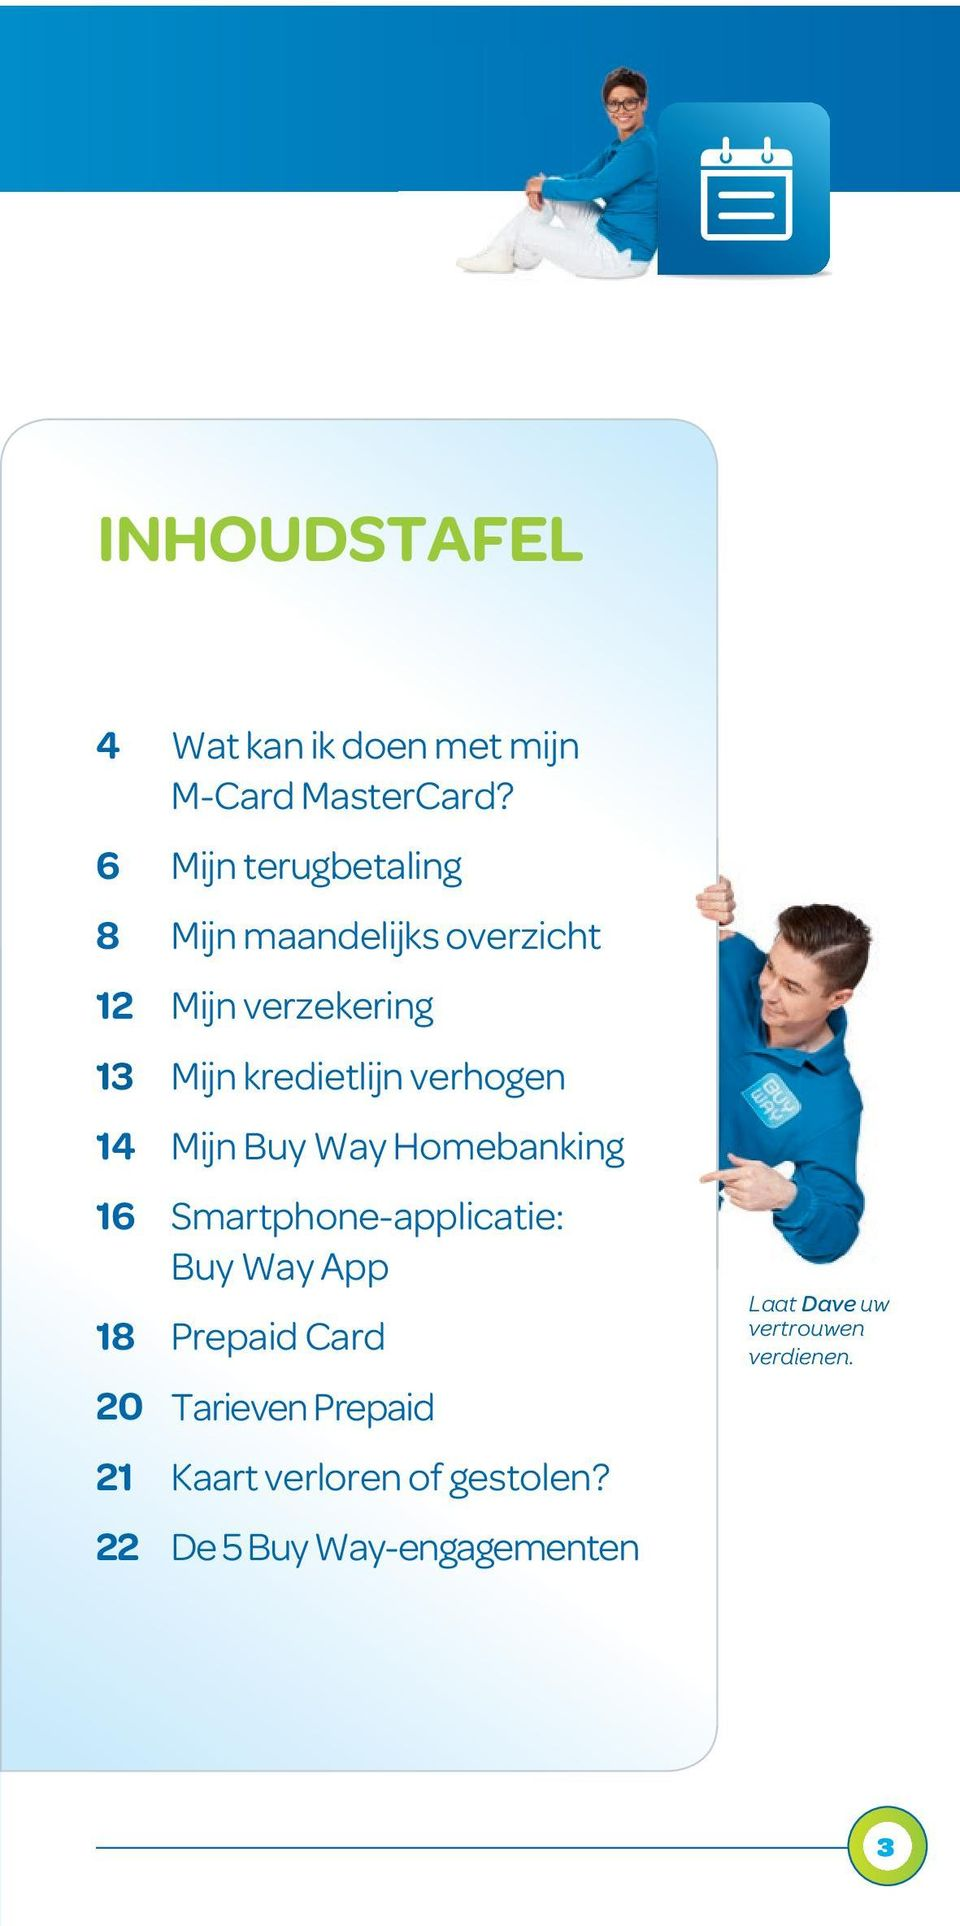 kredietlijn verhogen 14 Mijn Buy Way Homebanking 16 Smartphone-applicatie: Buy Way App